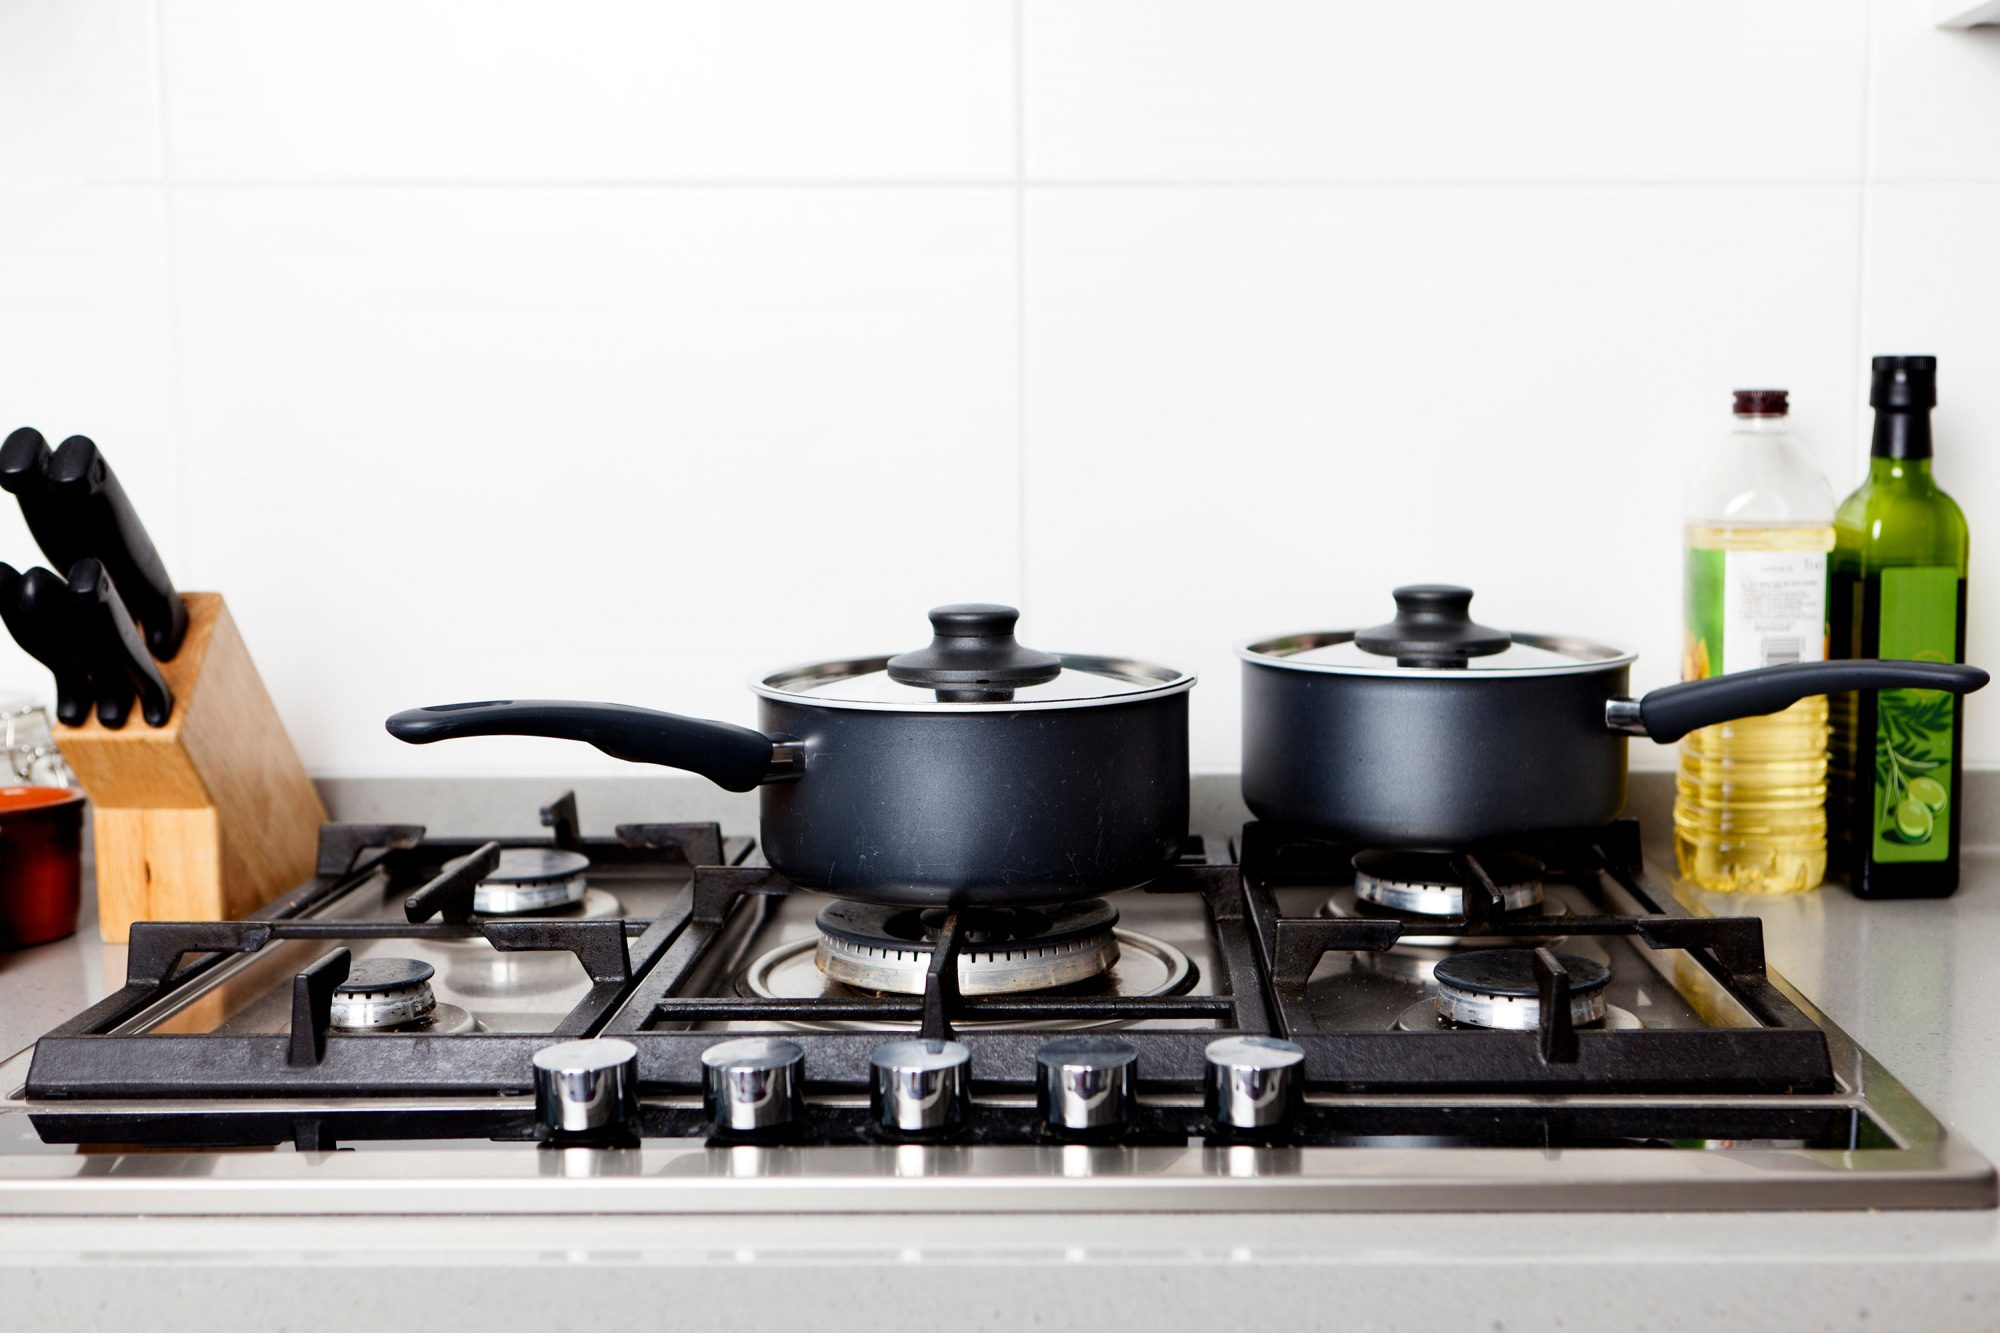 gas stove burners with saucepans